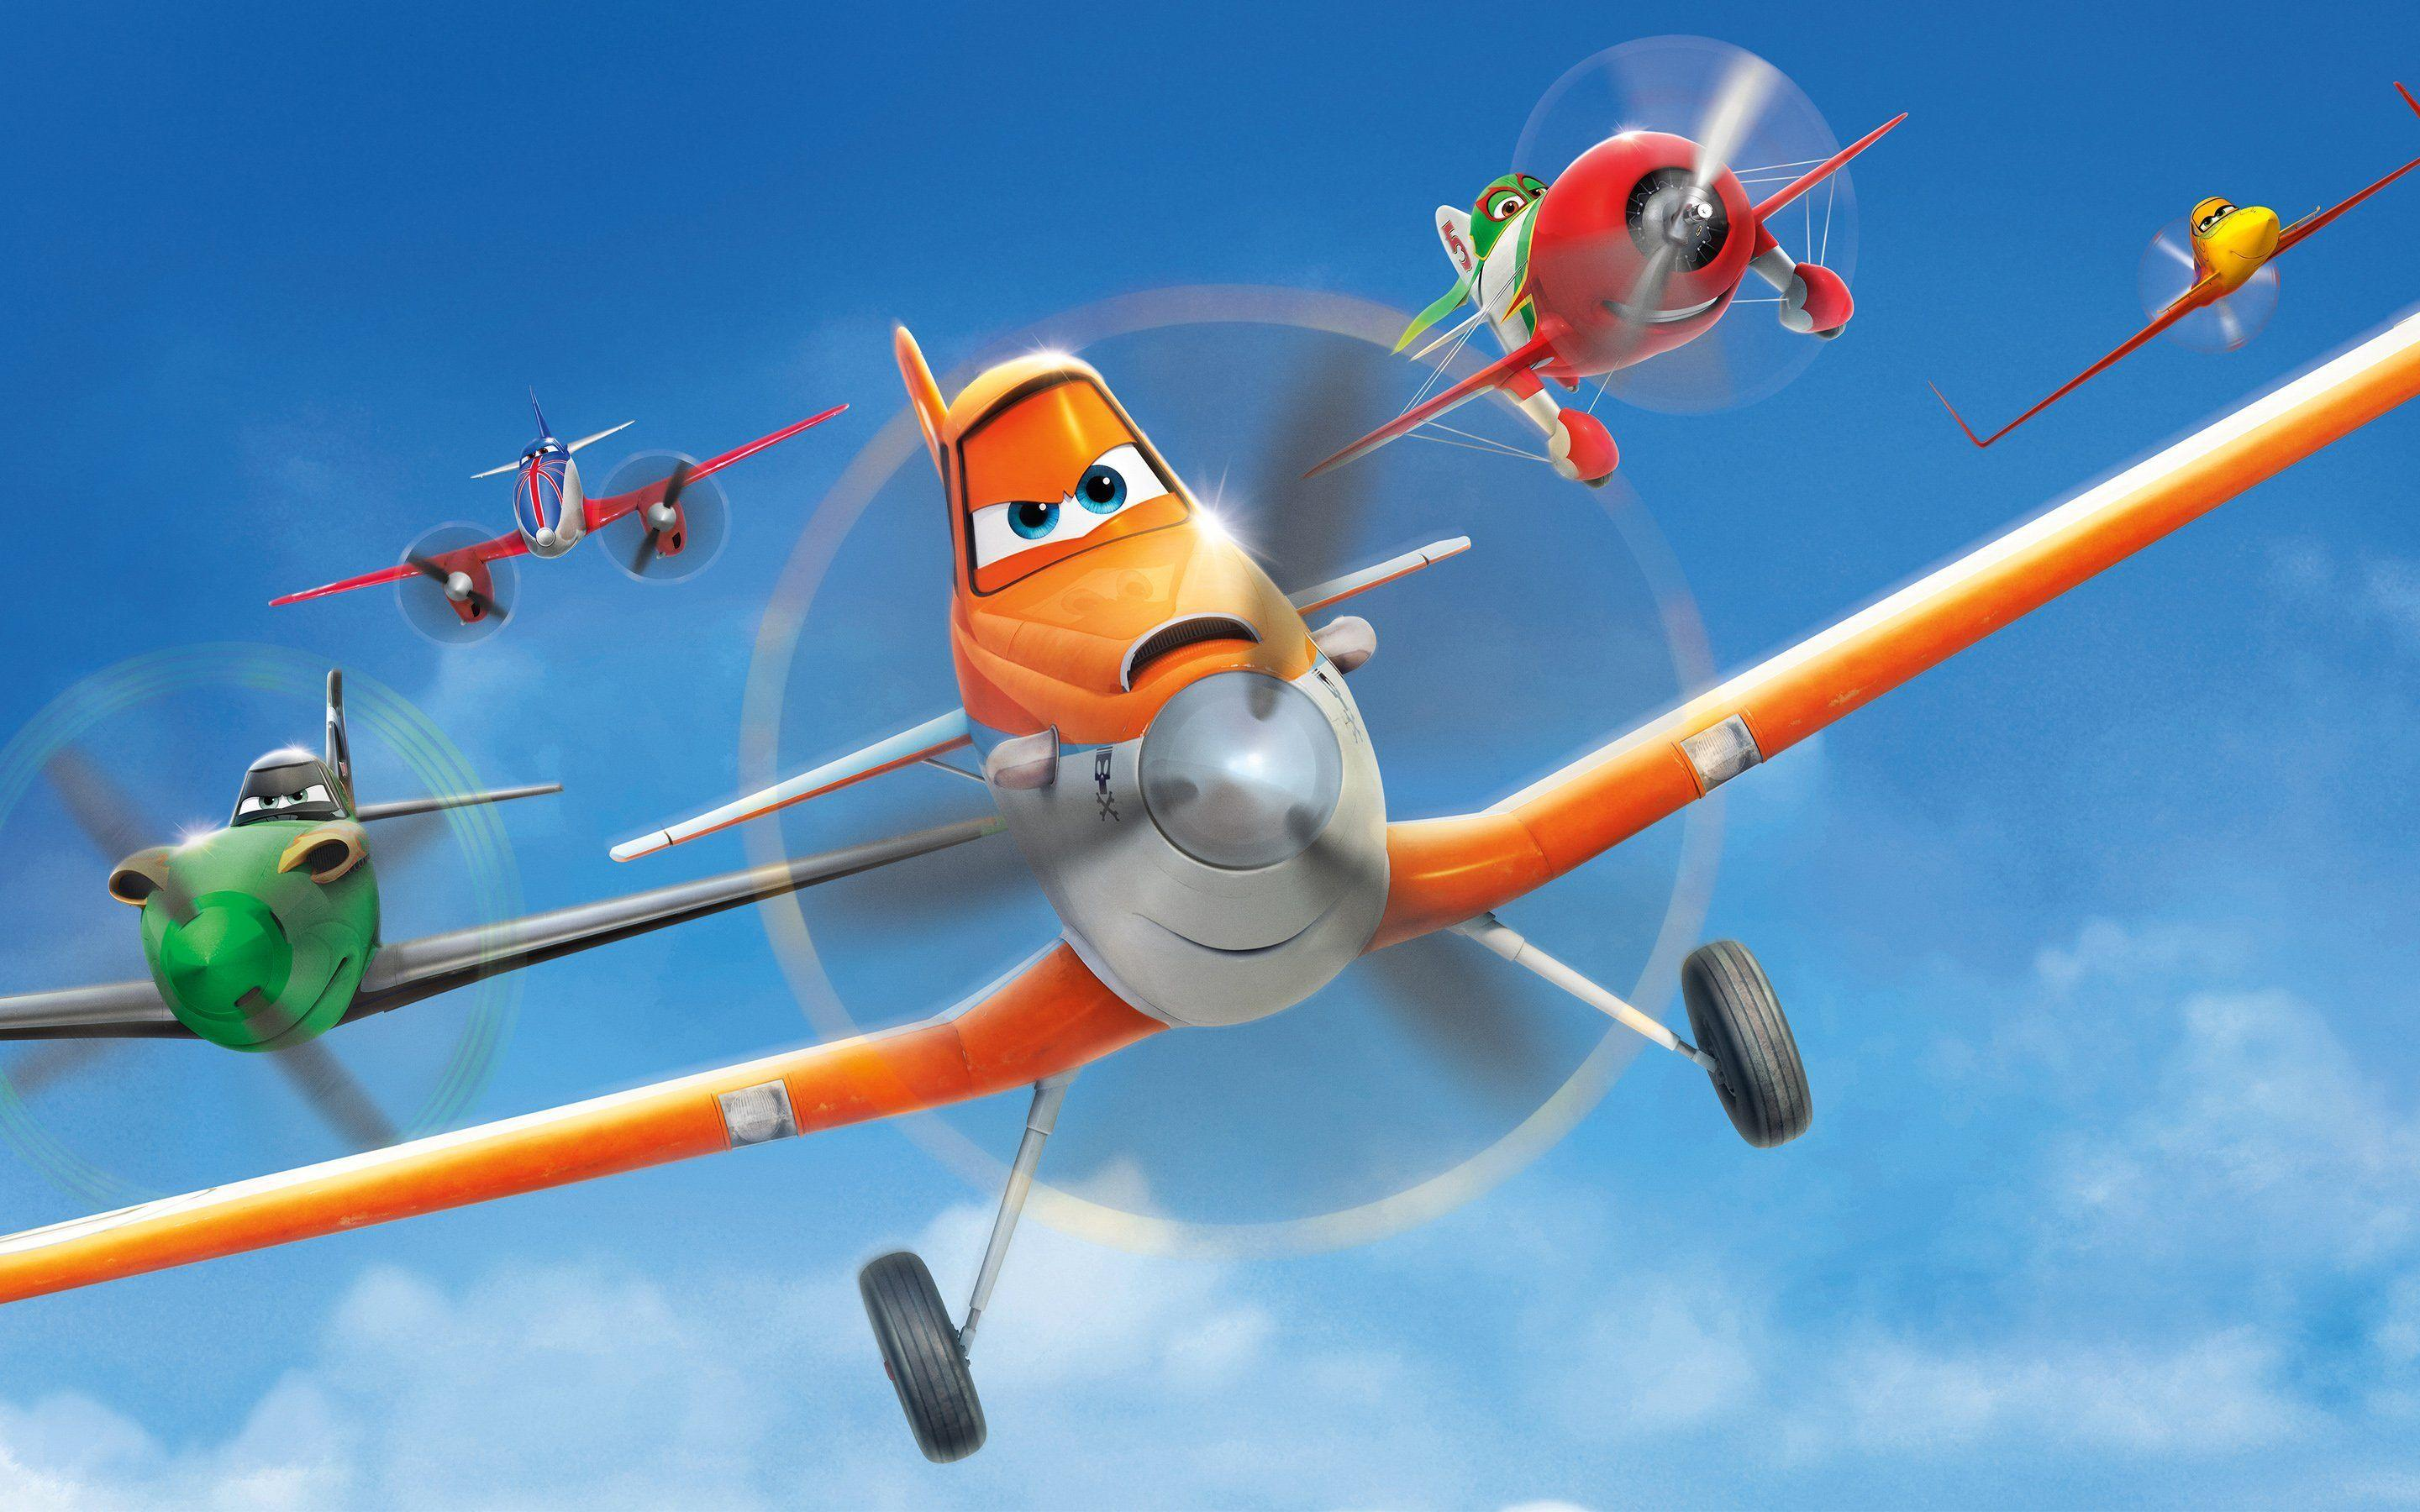 Disney Planes Wallpapers - HD Wallpapers Inn